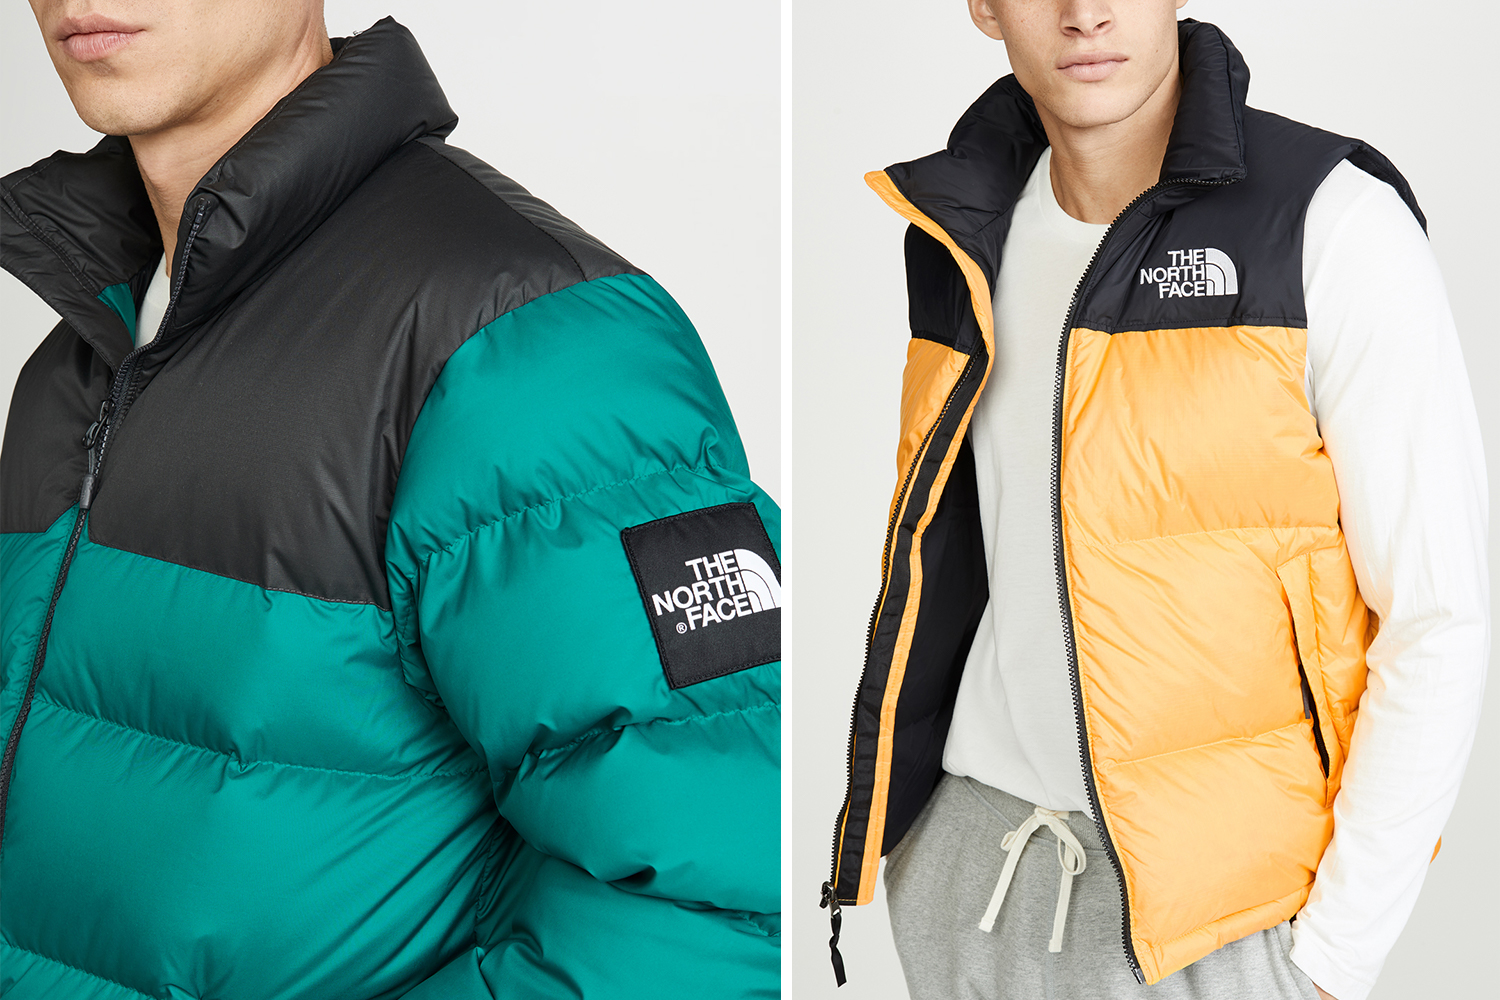 The North Face Jackets, Vests Up to $105 Off at East Dane